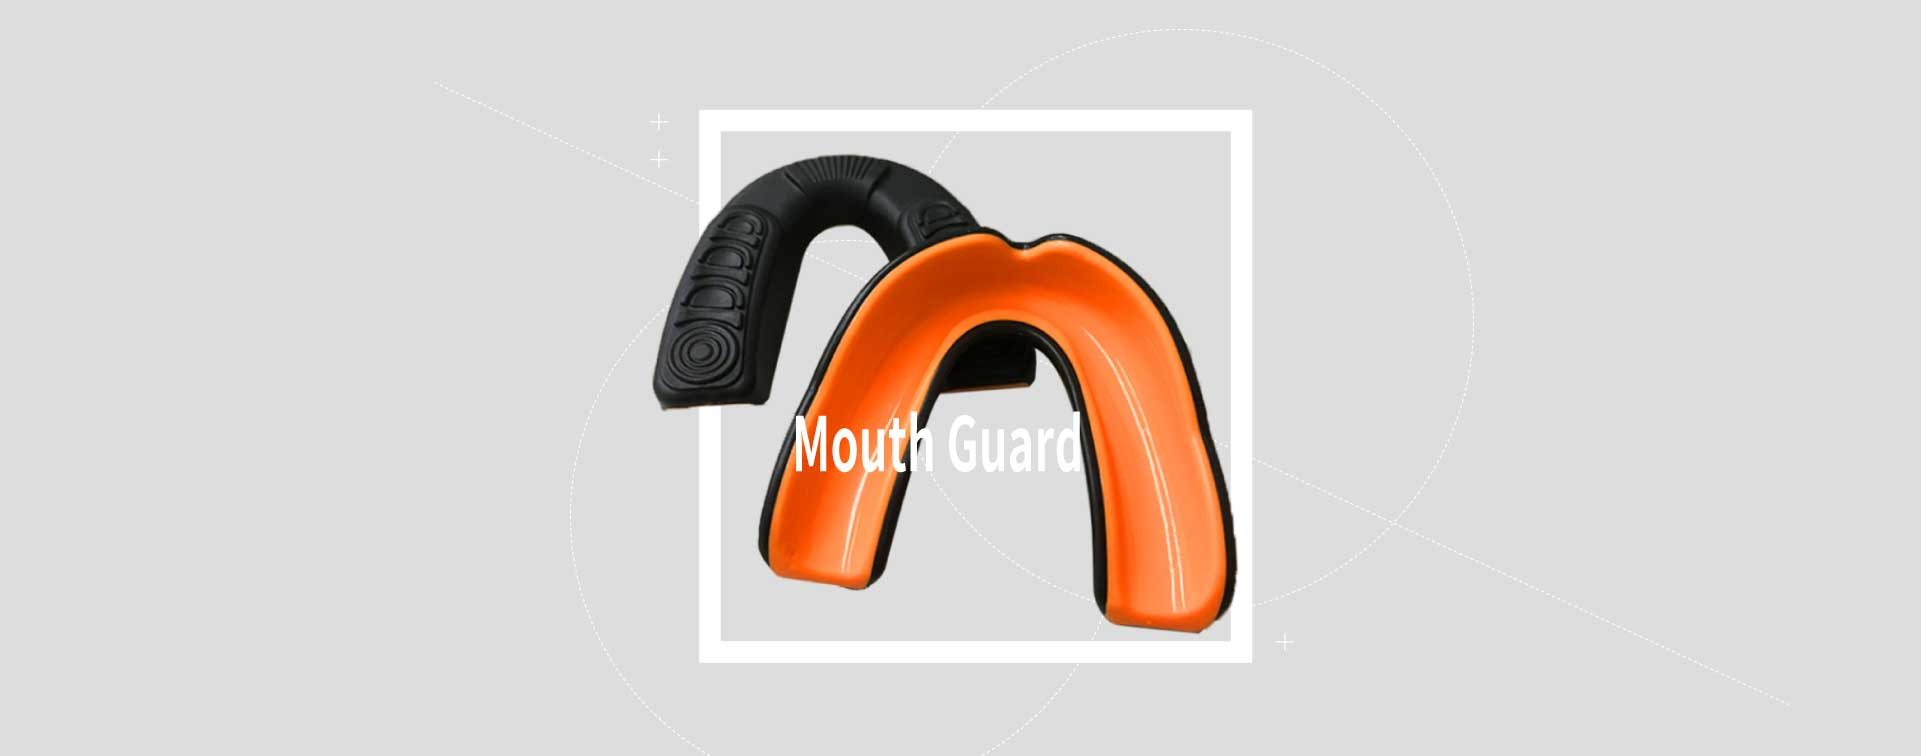 Mouth Guard 運動牙套 page